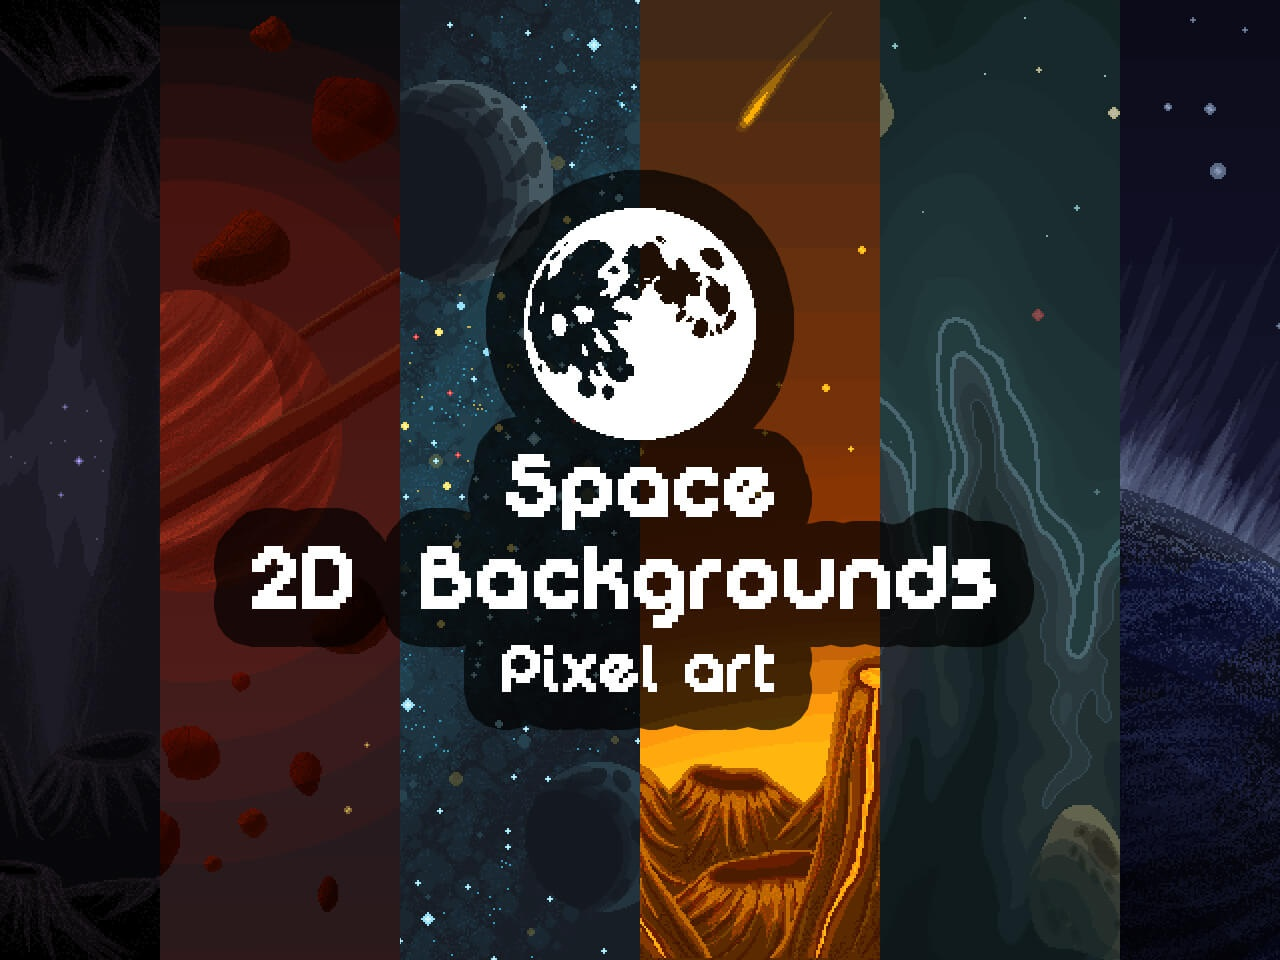 Pixel Art Space 2d Backgrounds by 2D Game Assets on Dribbble